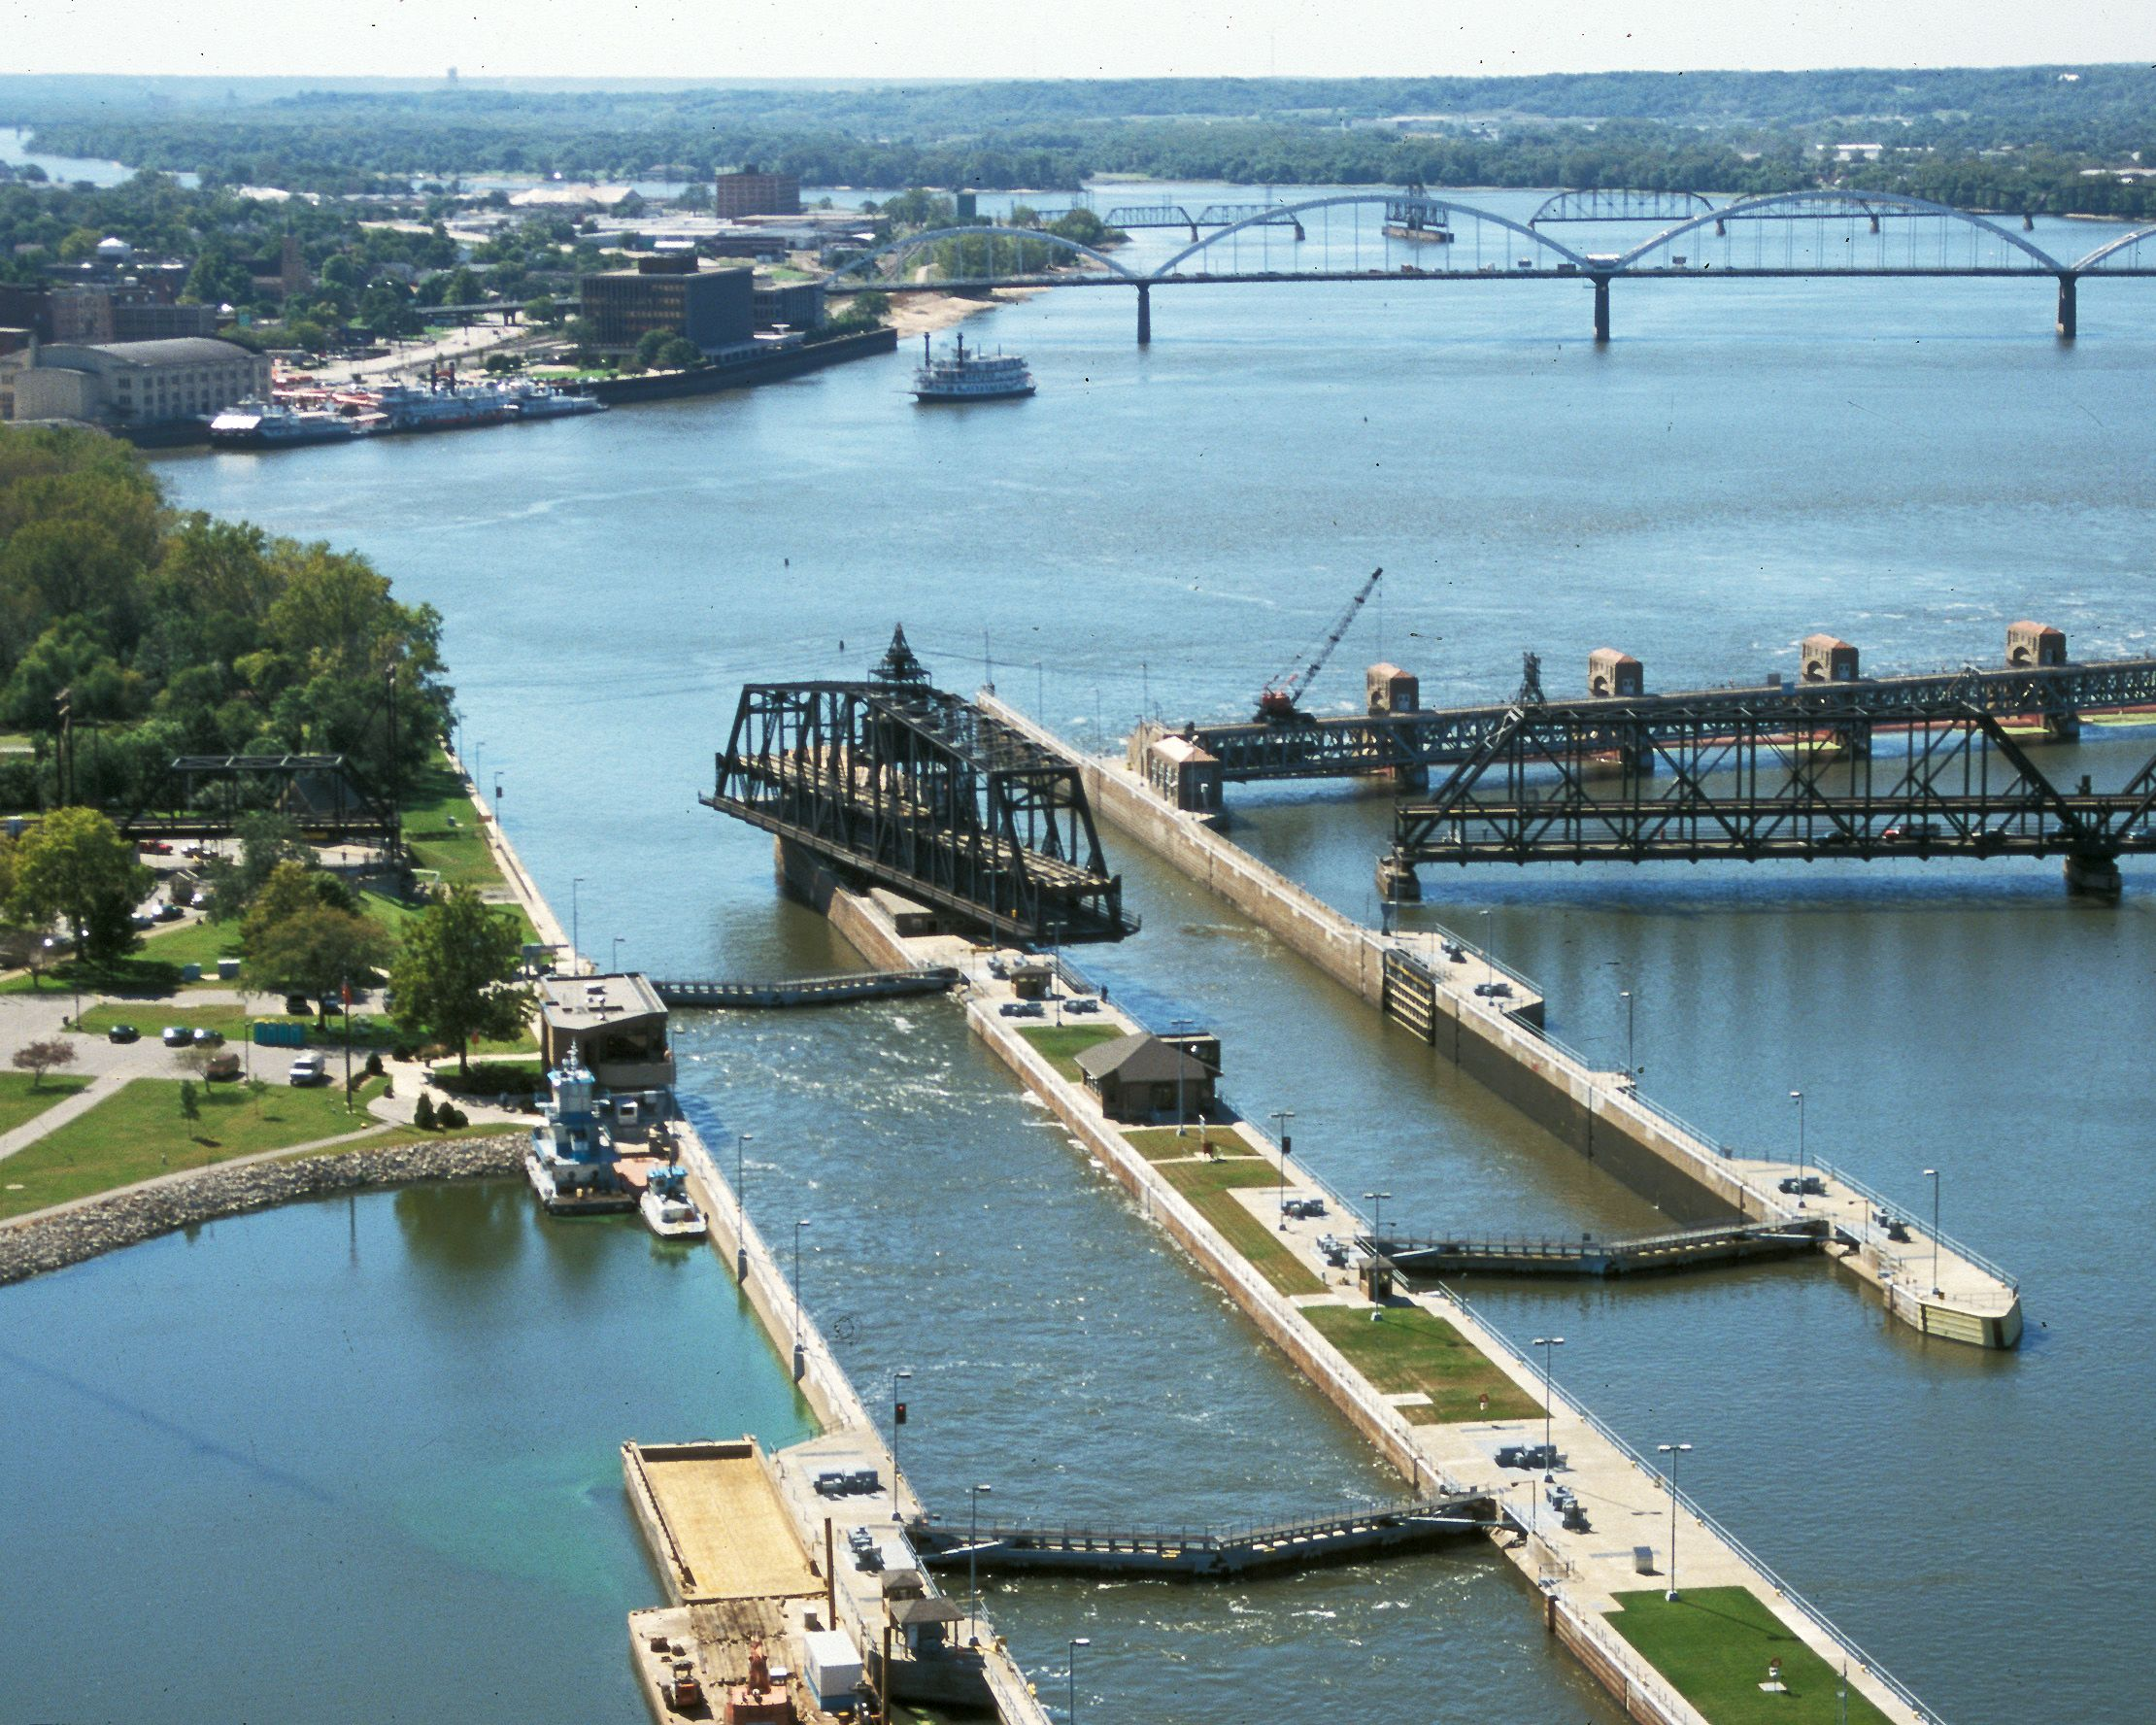 The Rock Island Arsenal Bridge is the only swinging